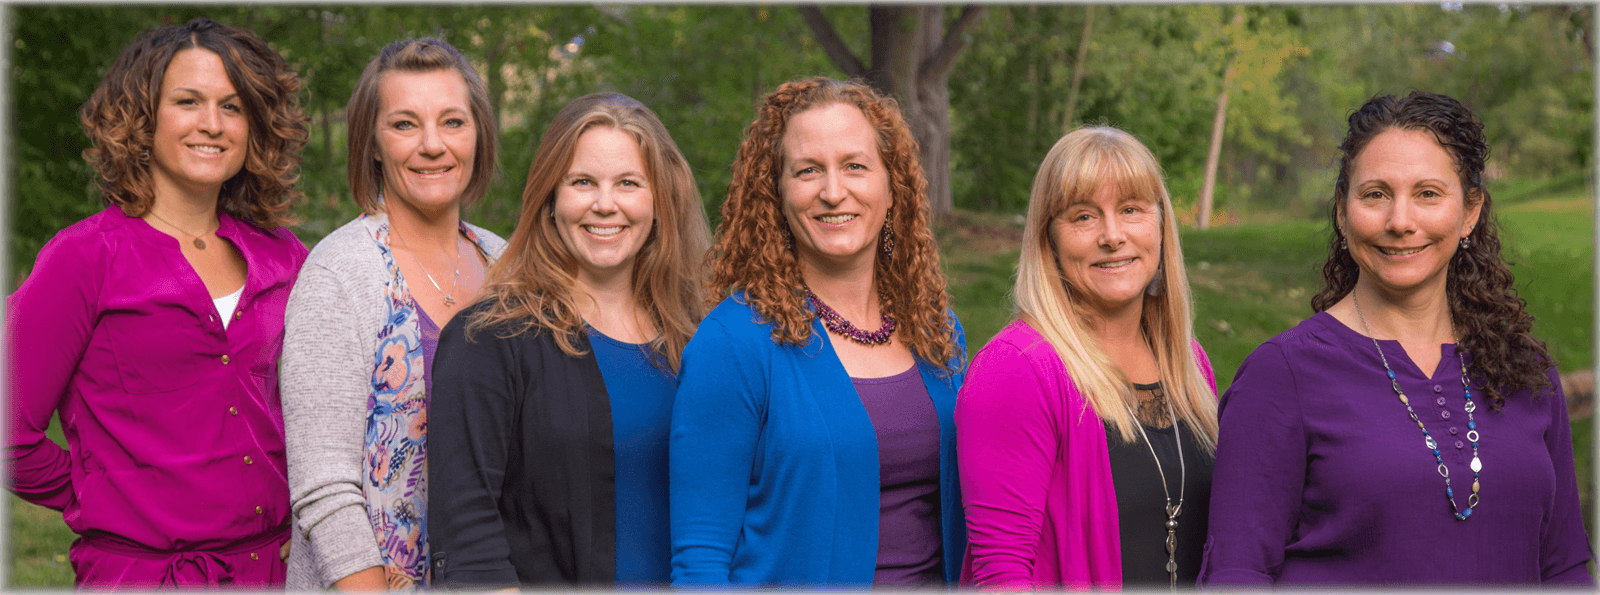 Midwives of South Denver Ob-Gyn